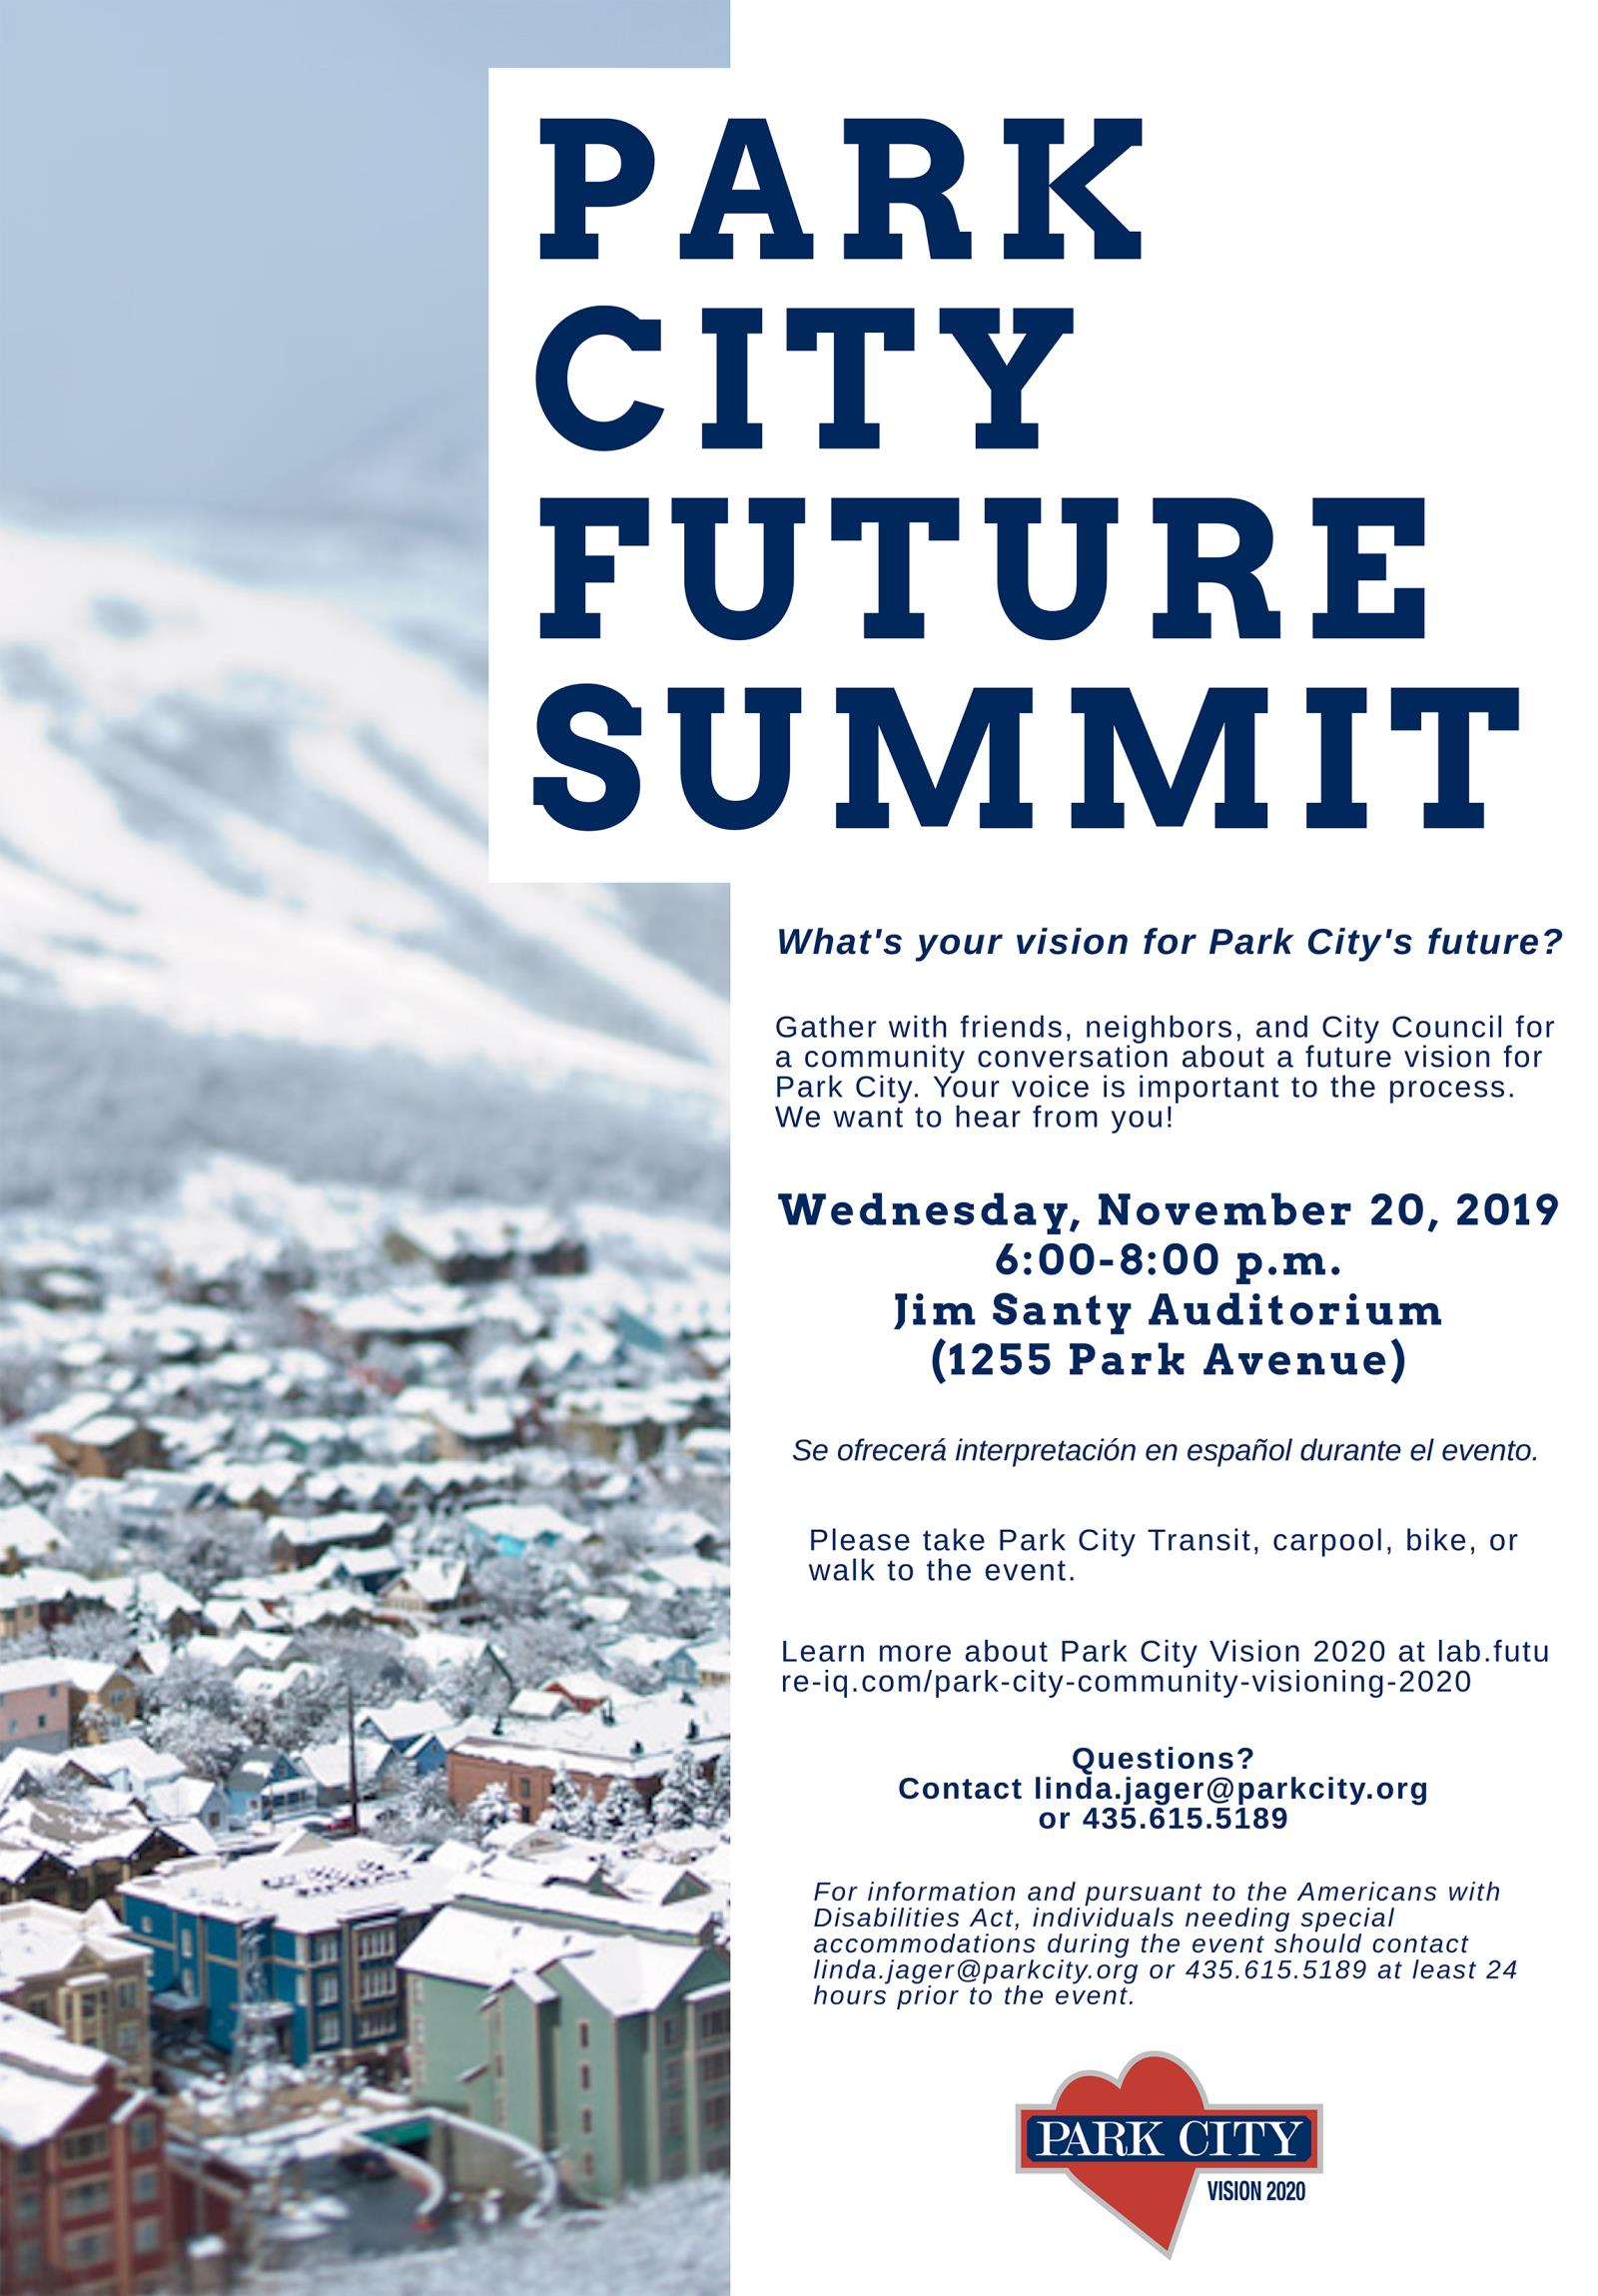 Park City Future Summit 2019